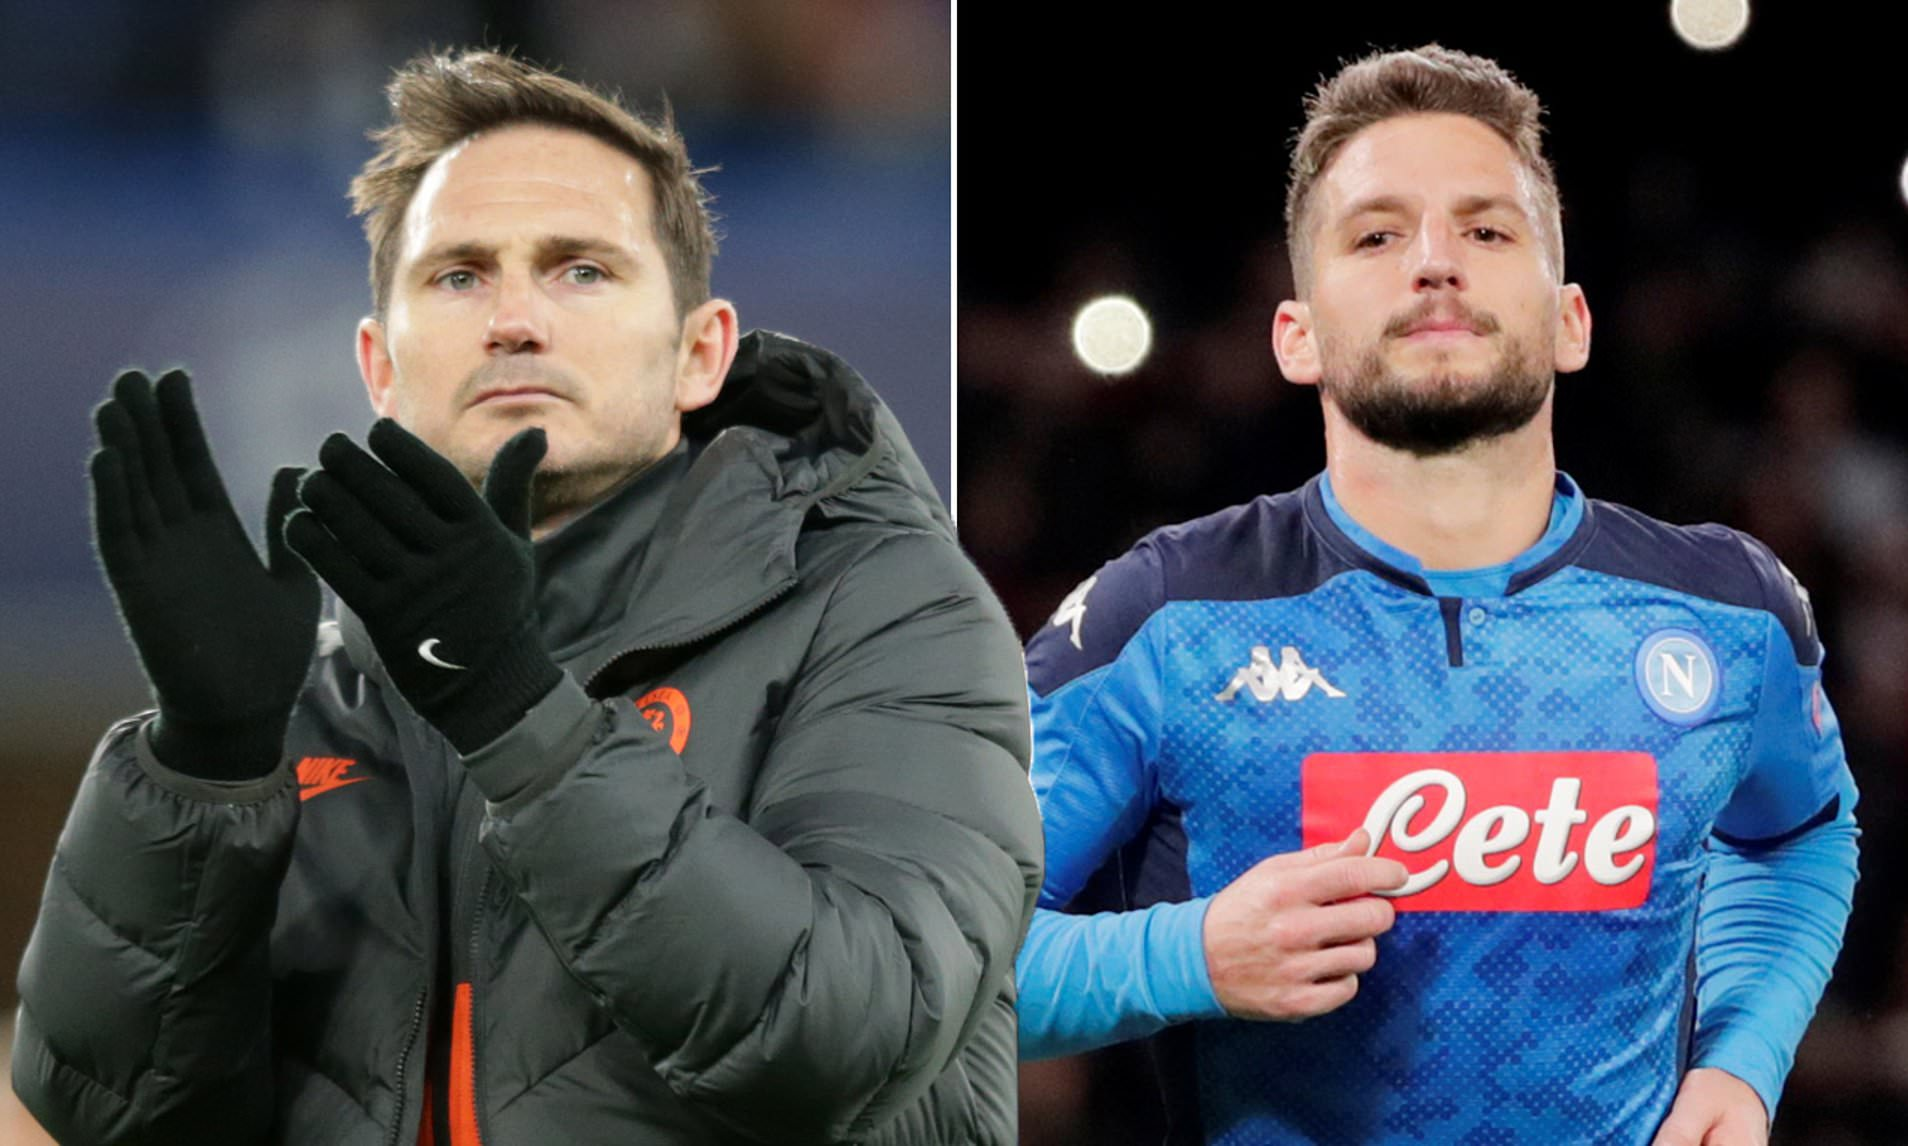 Frank Lampard S Contact With Dries Mertens On Instagram Raises Eyebrows Chelsea News